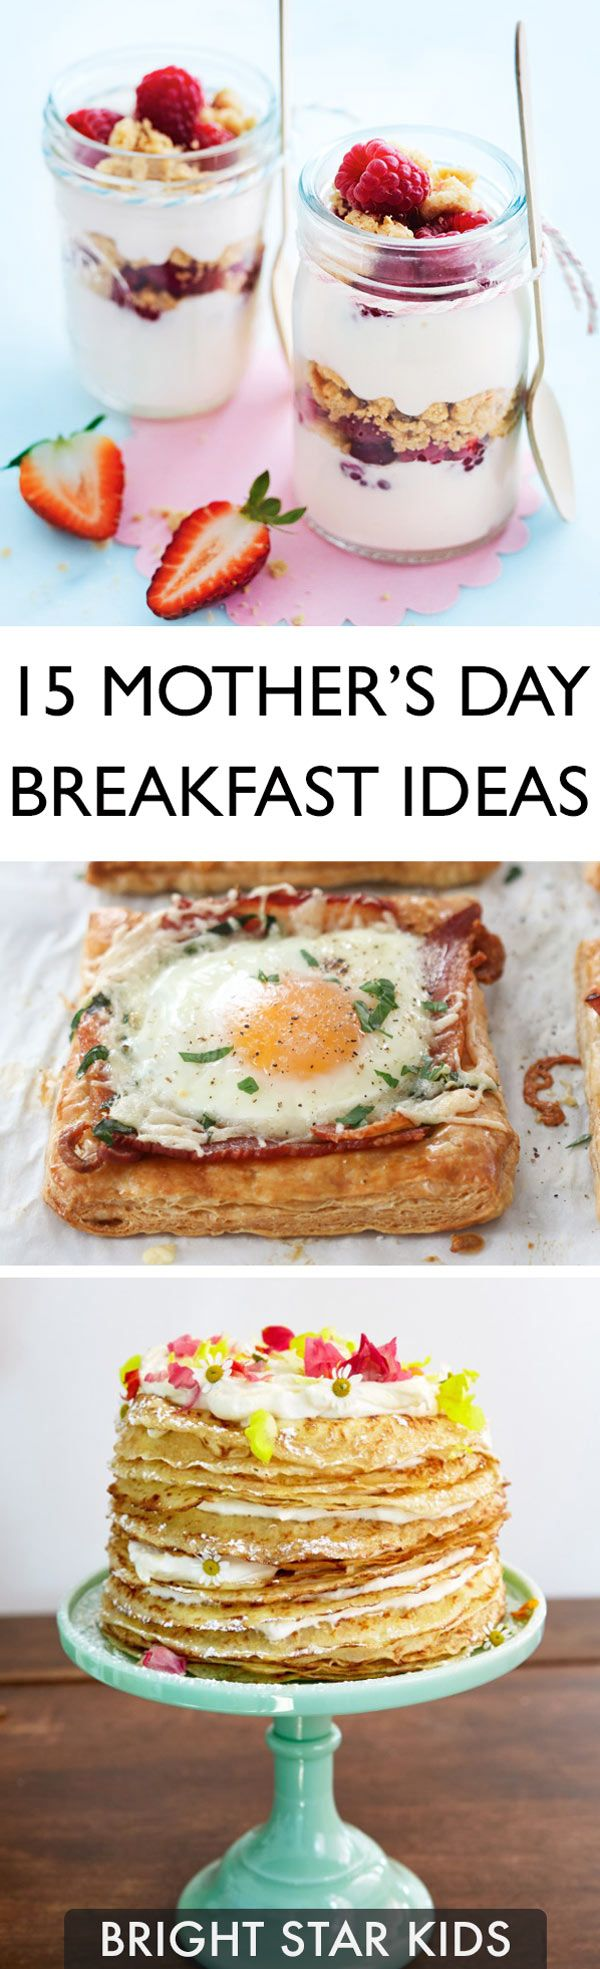 Spoil your Mum this Mother's Day! See also our free Mother's Day printables at blog.brightstarkids.com.au #mothersday #breakfastinbed #bestmum